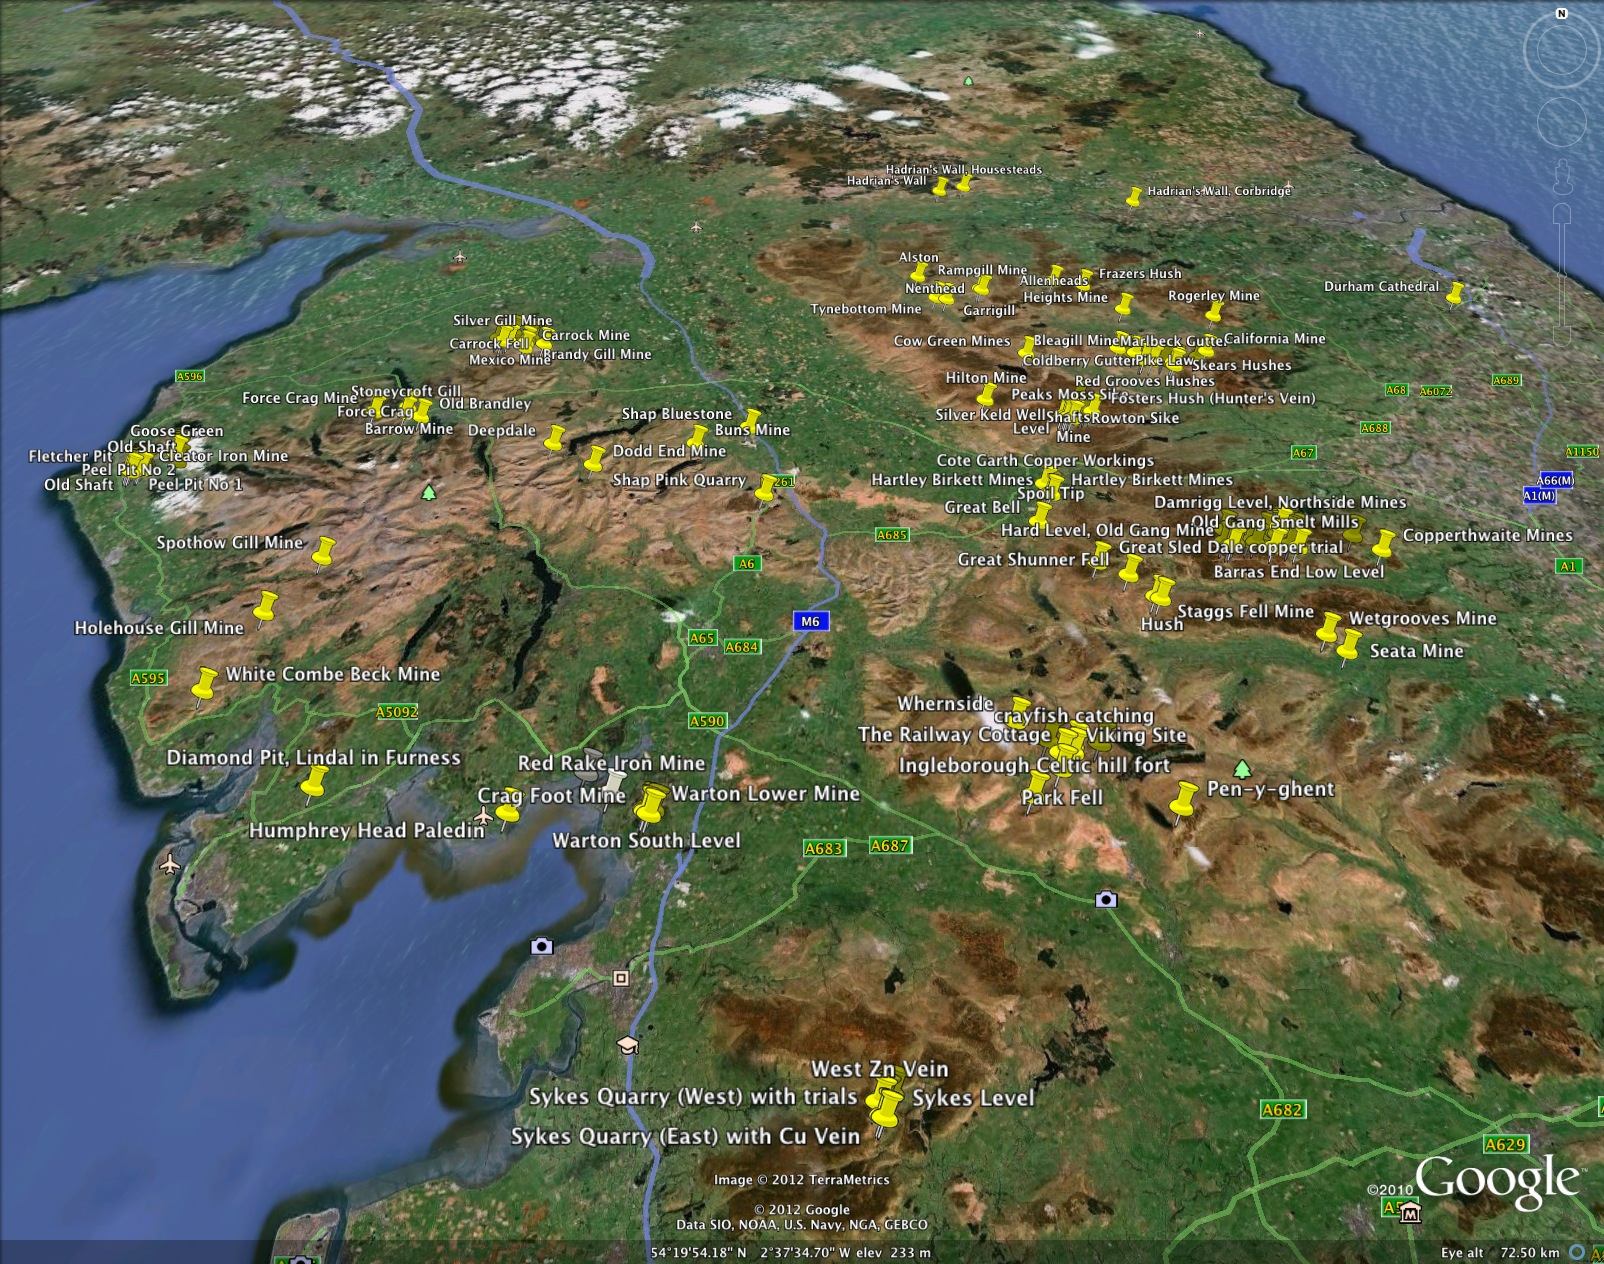 Yorkshire, Durham and Cumbria localities overview